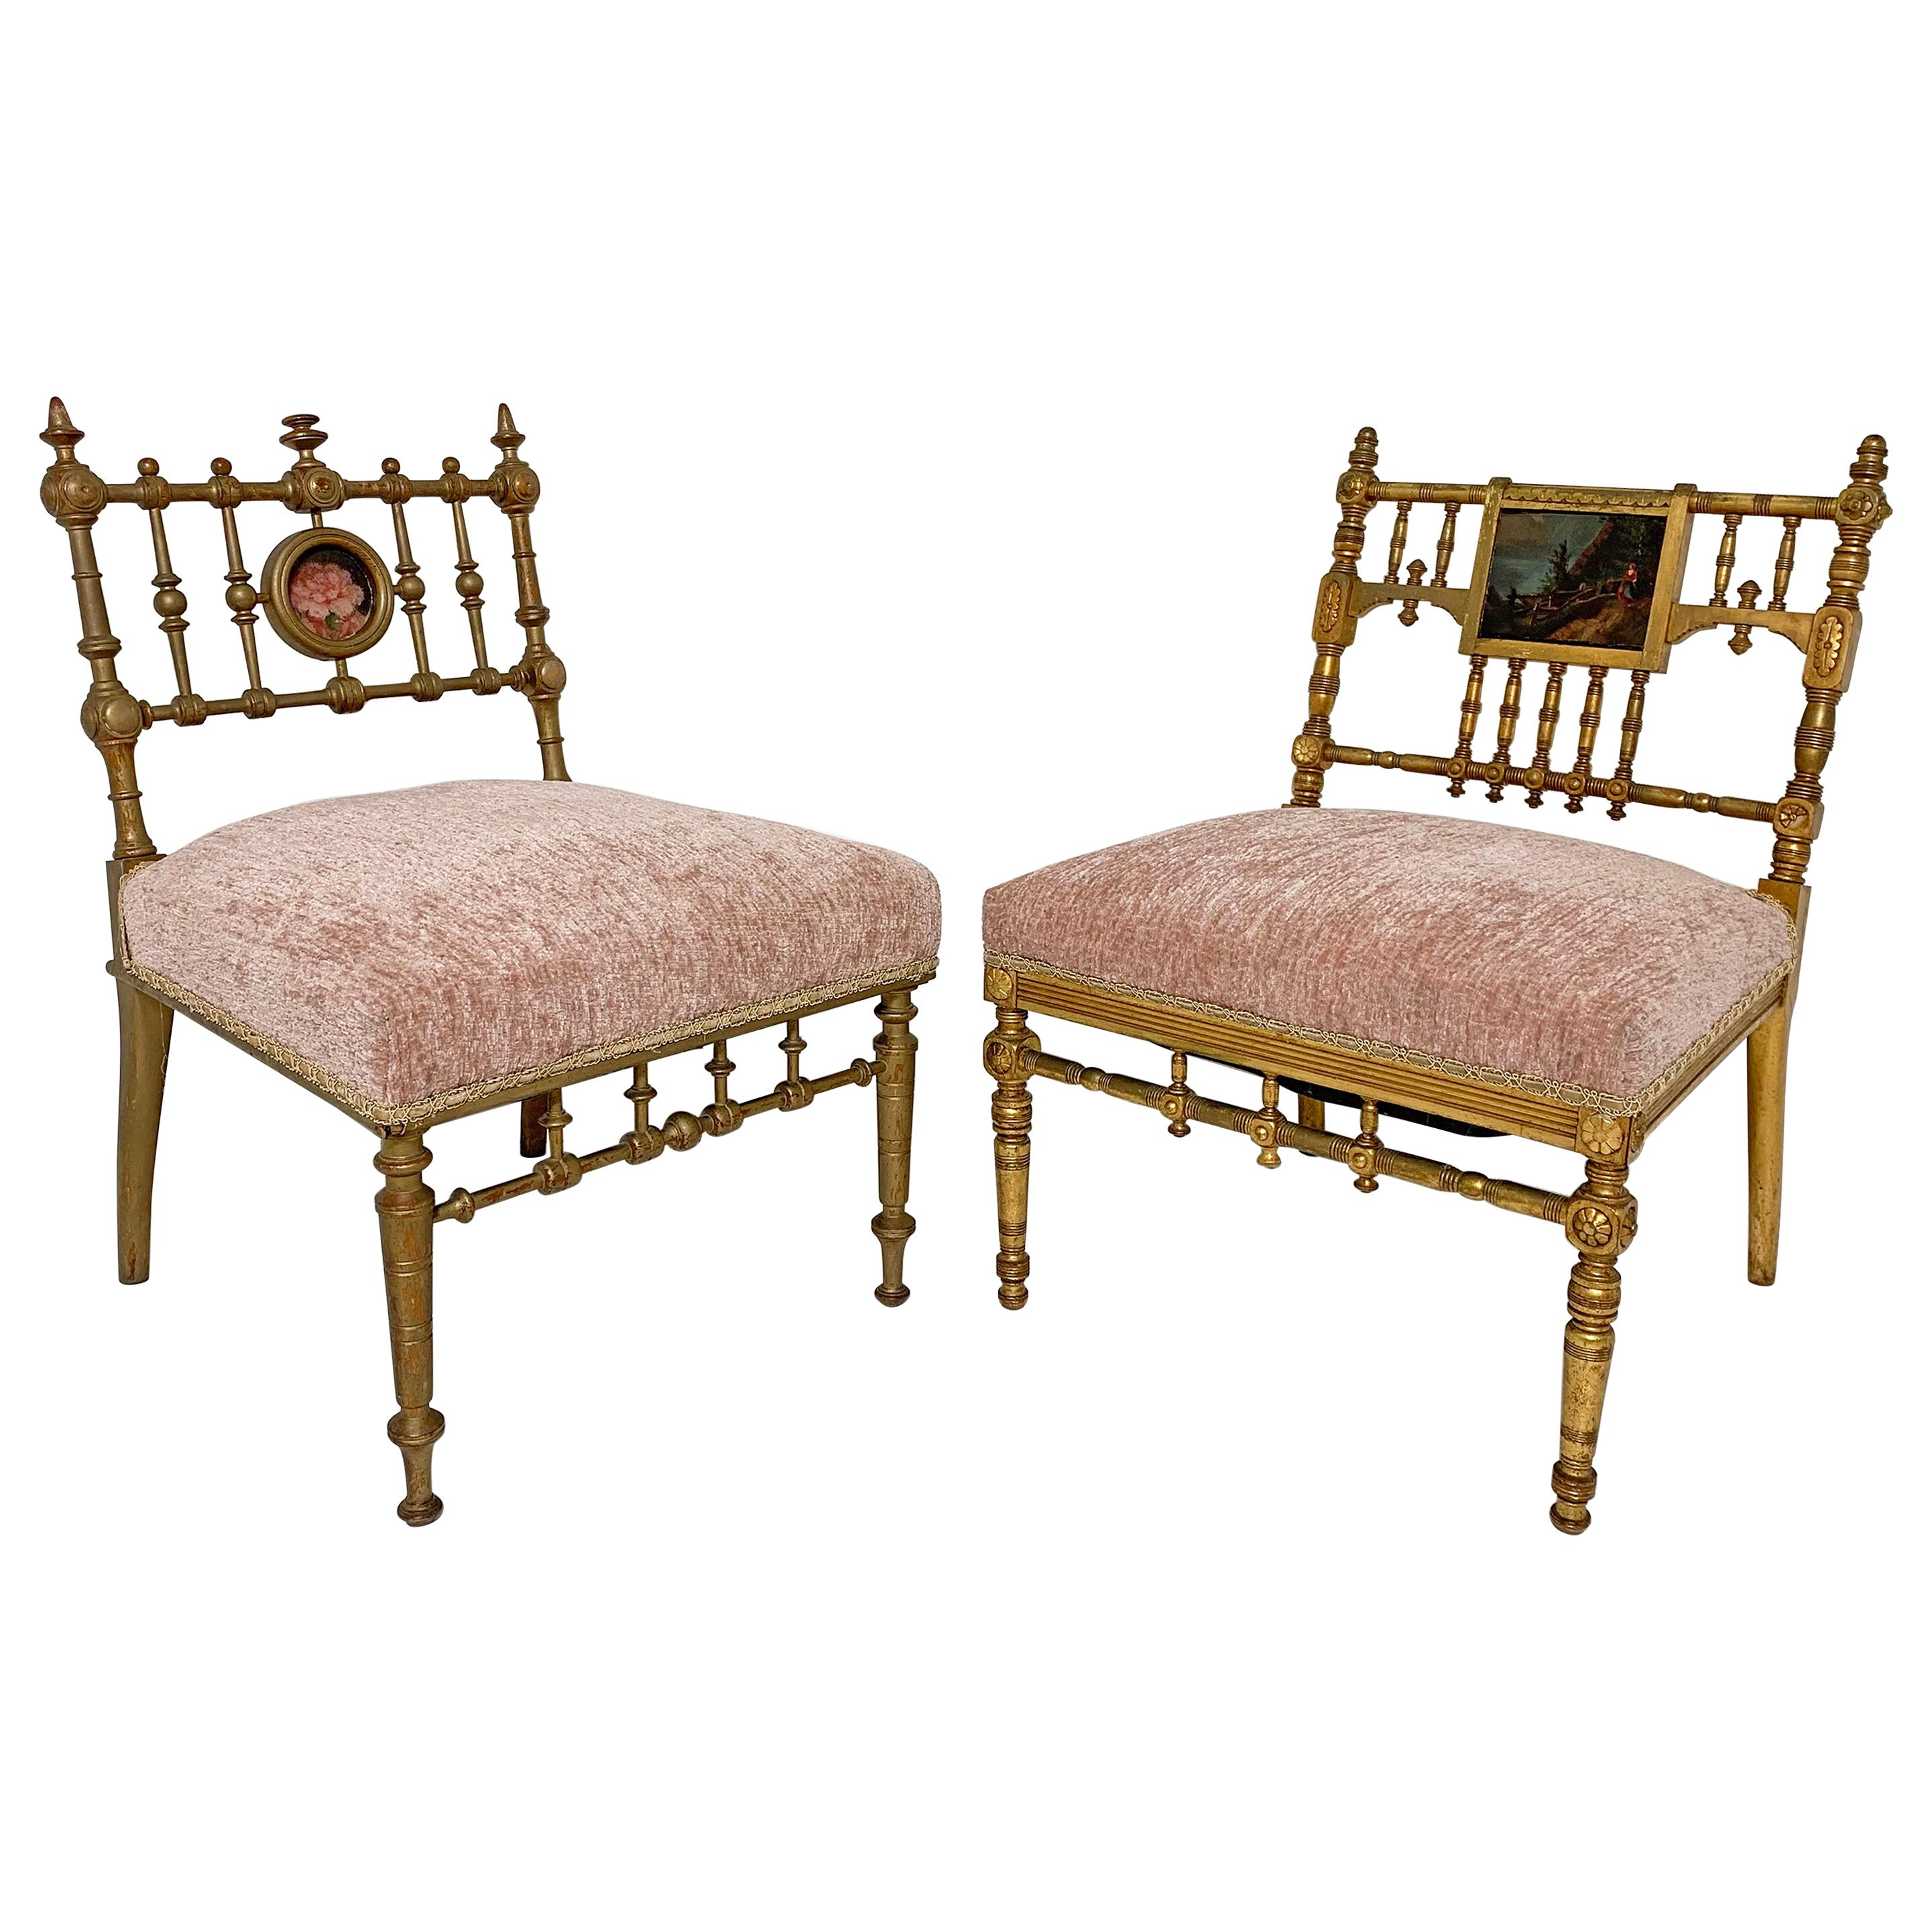 Two American Aesthetic Movement Giltwood Slipper Chairs, circa Late 1800s